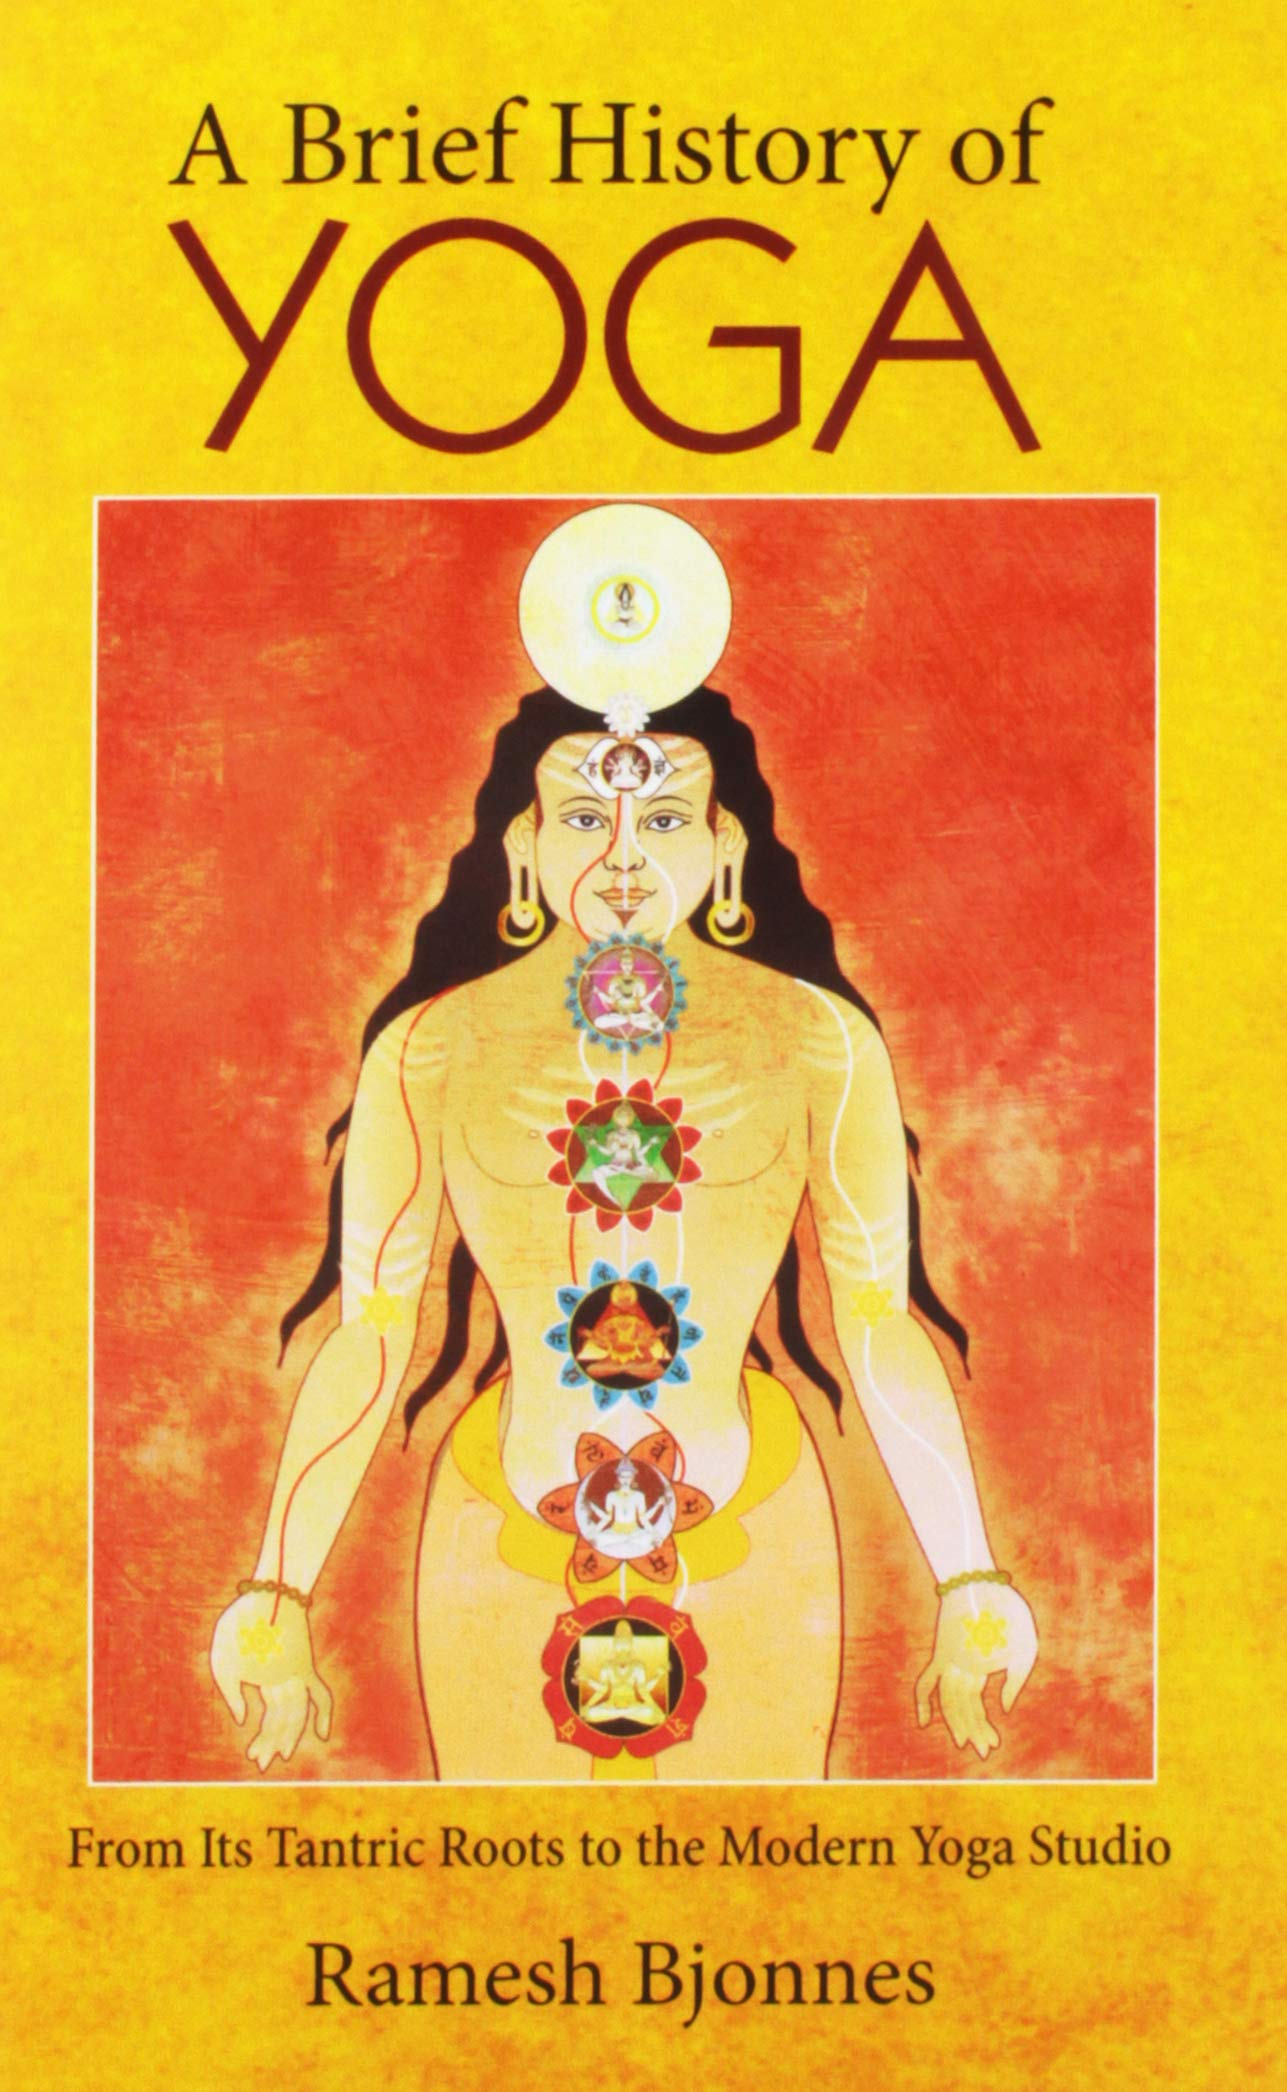 A Brief History of Yoga: From Its Tantric Roots to the Modern Yoga Studio ebook